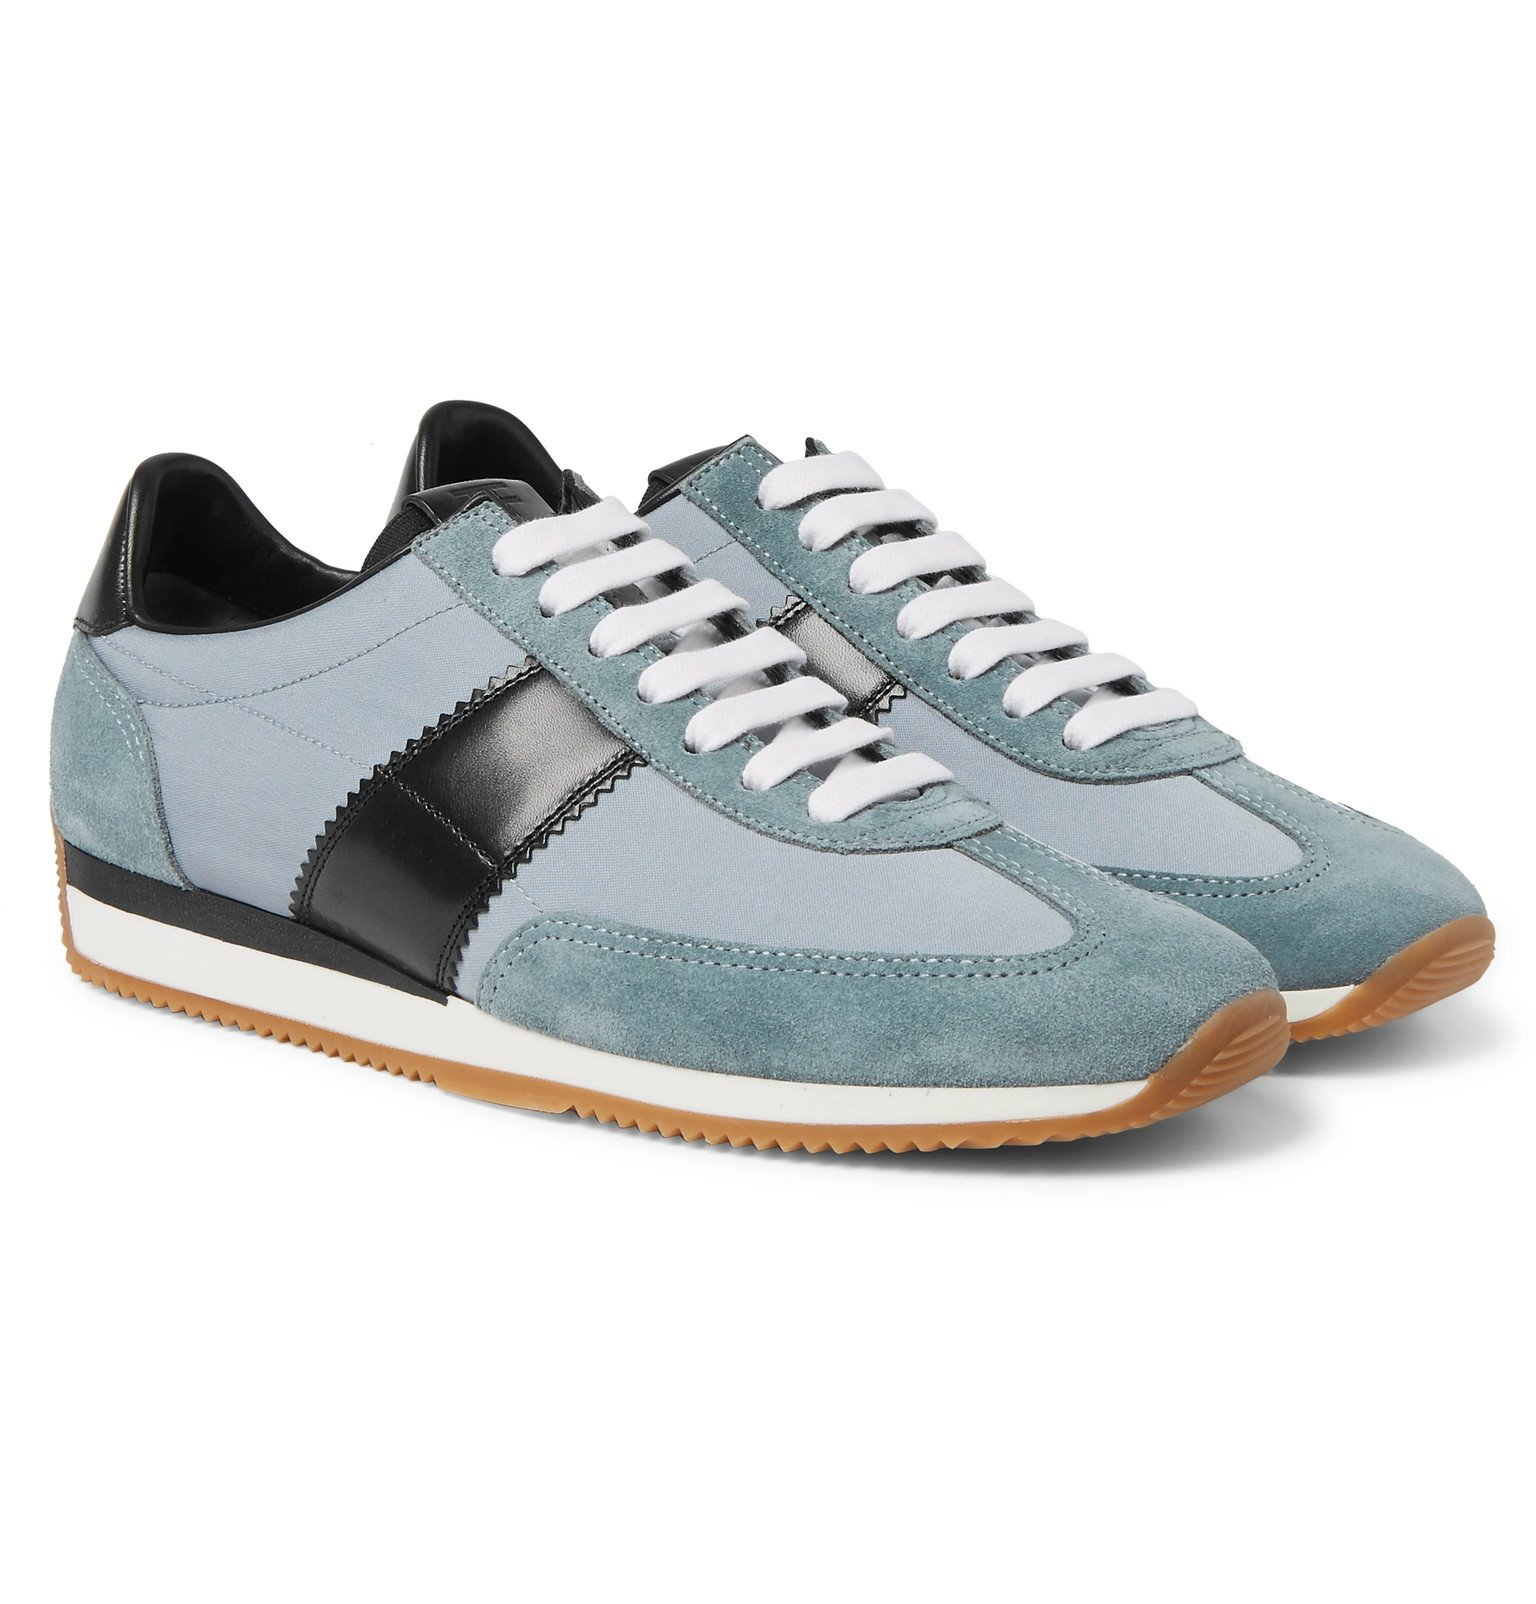 Tom Ford Retro Running Sneakers 4